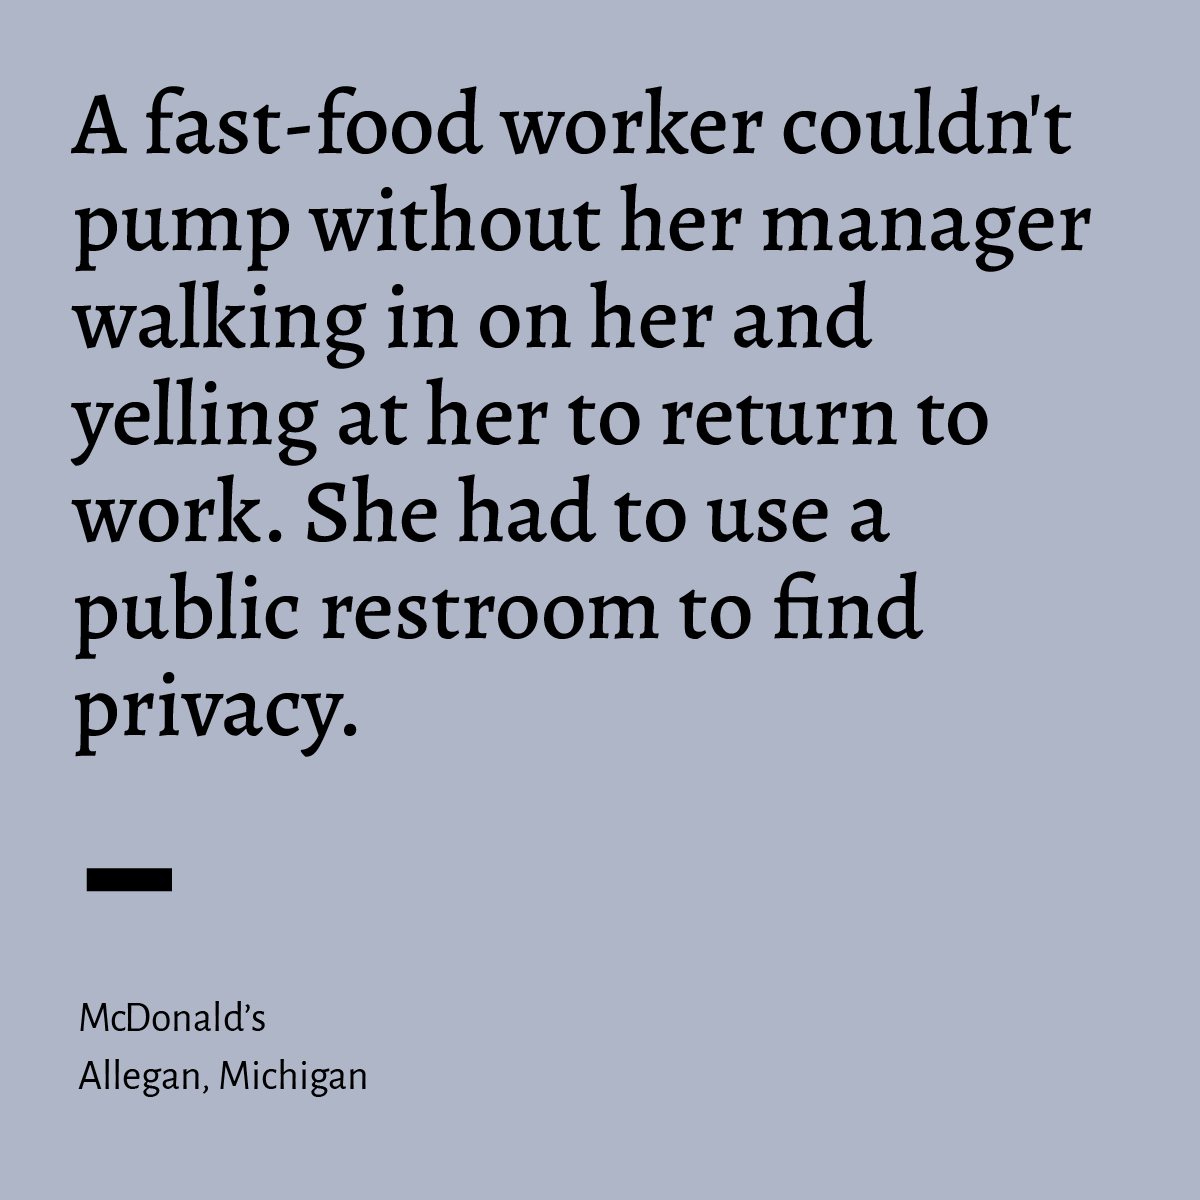 Westlake Legal Group 5d82639ee4b0849d472244b0 How Employers Make It Impossible For Working Women To Breastfeed